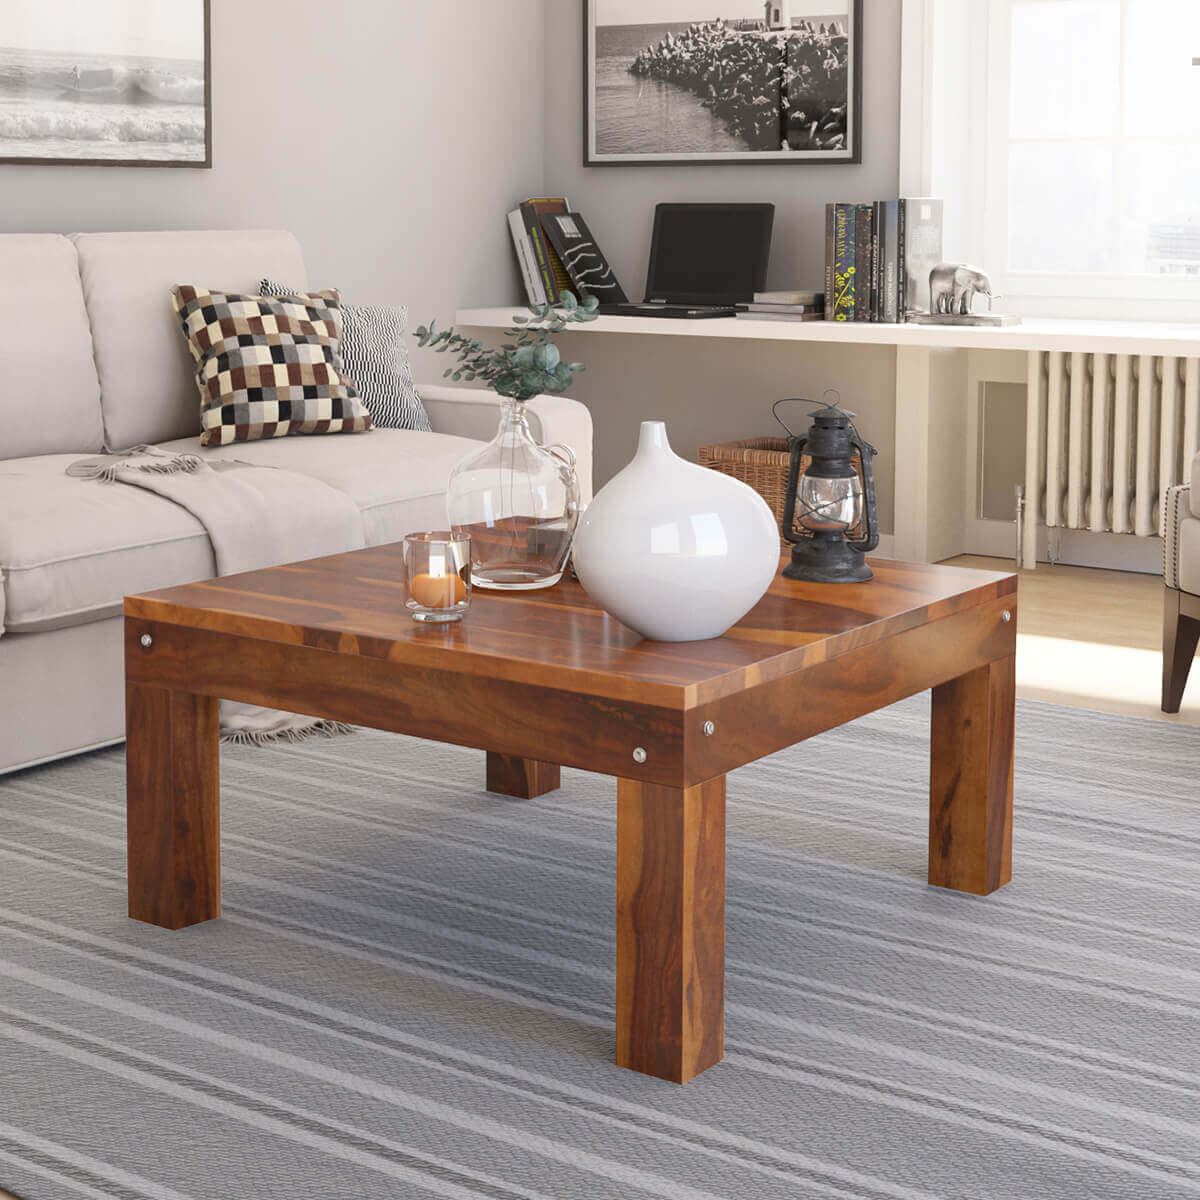 Solid Wood Traditional Rustic Square Coffee Table: wood square coffee tables